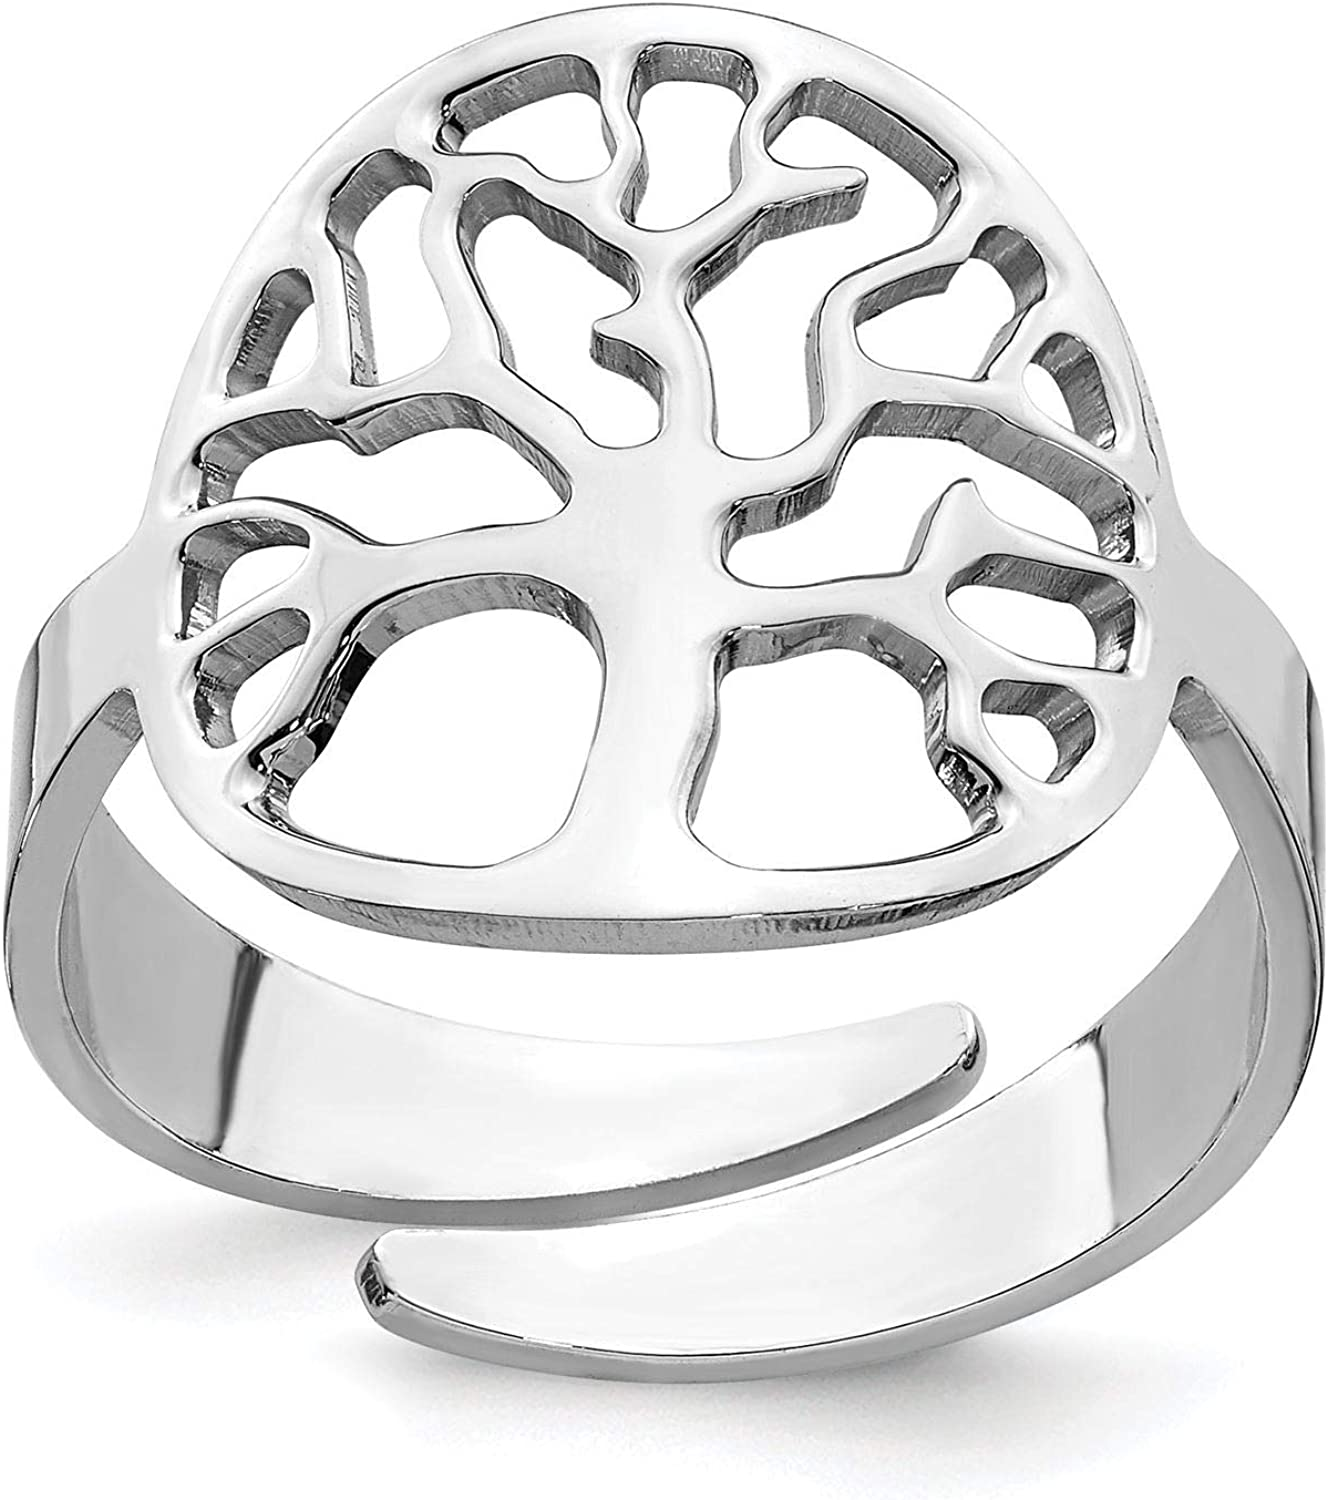 925 Sterling Silver Rhodium-plated Polished Tree Adjustable Ring